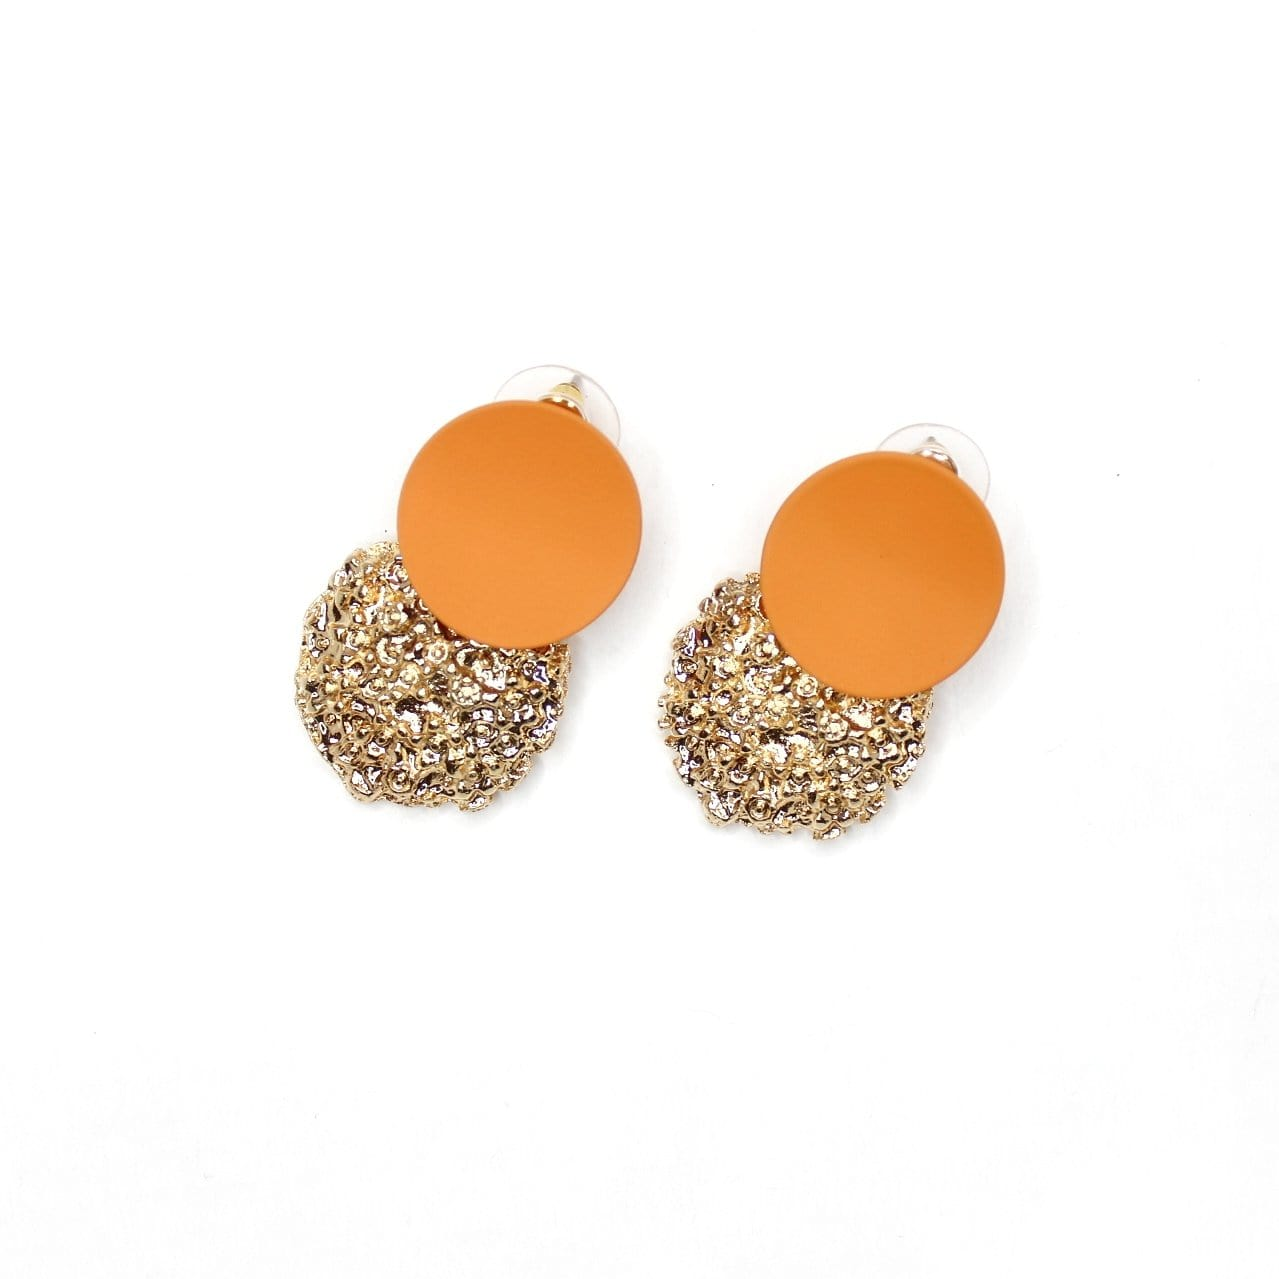 Buy beautiful Orange and Gold Textured Circle Earrings - AWKN Jewelry's